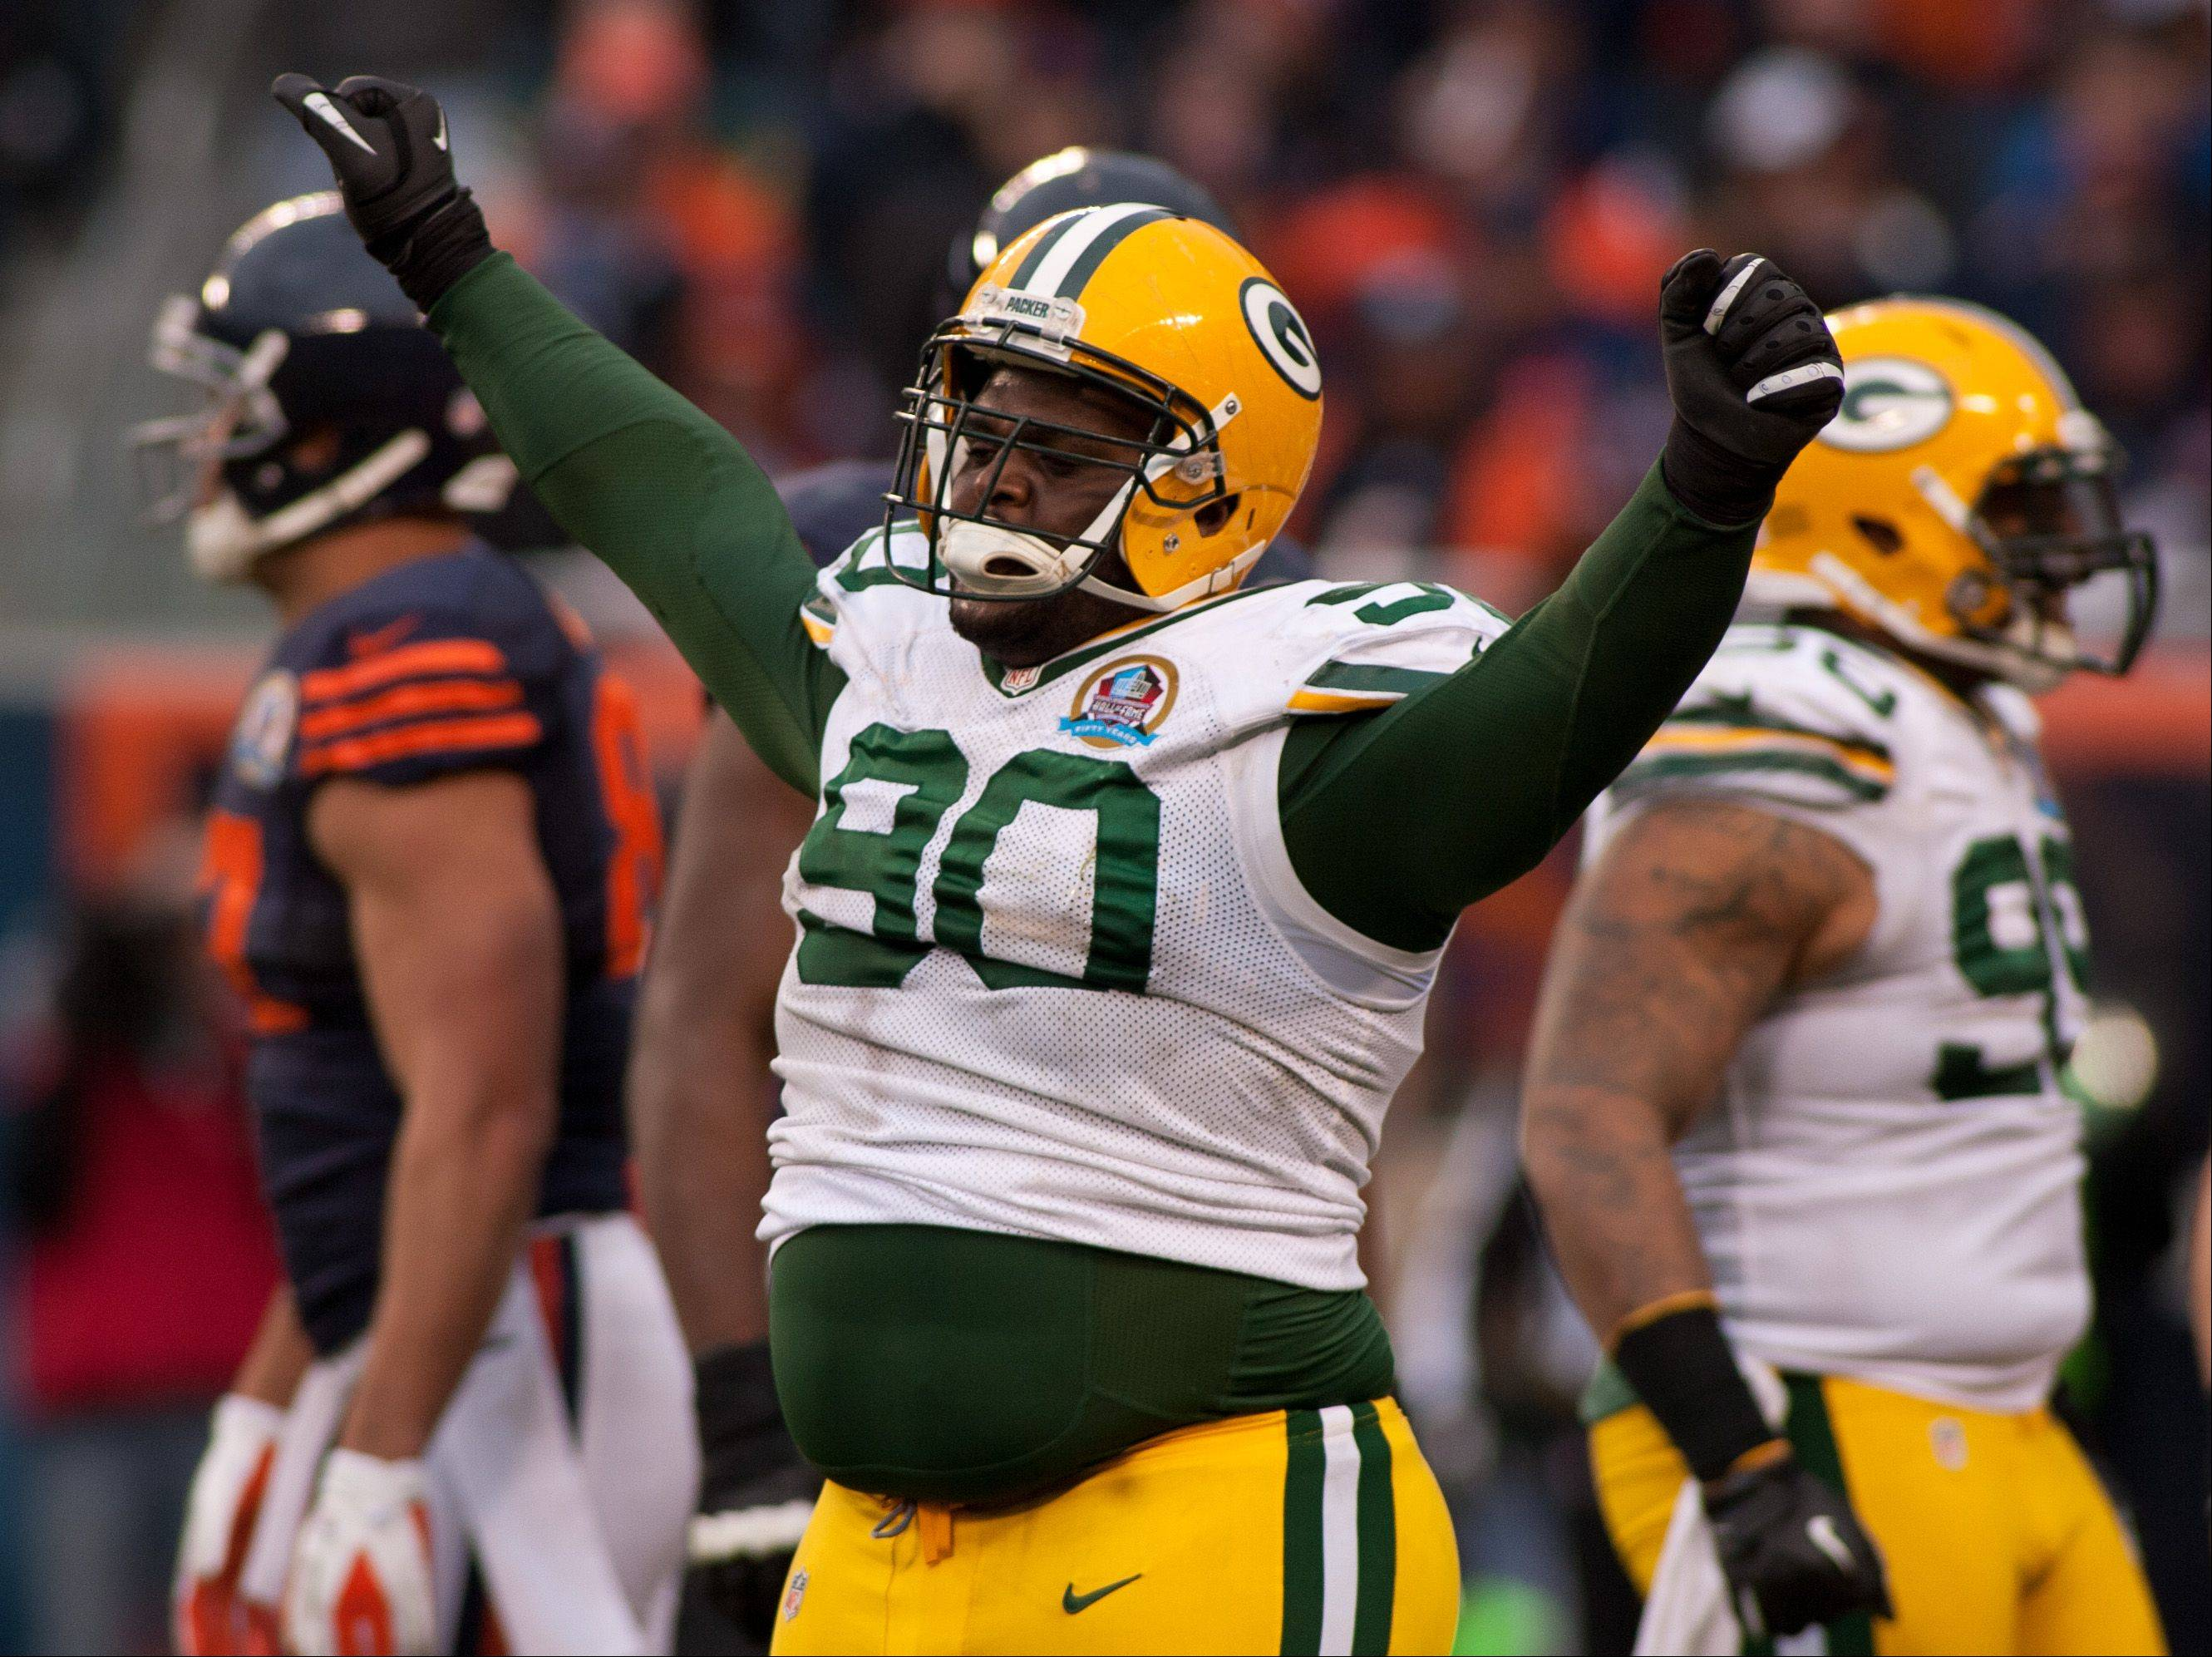 The Packers' B.J. Raji celebrates a goal-line stand, during Sunday's win over the Bears at Soldier Field in Chicago.